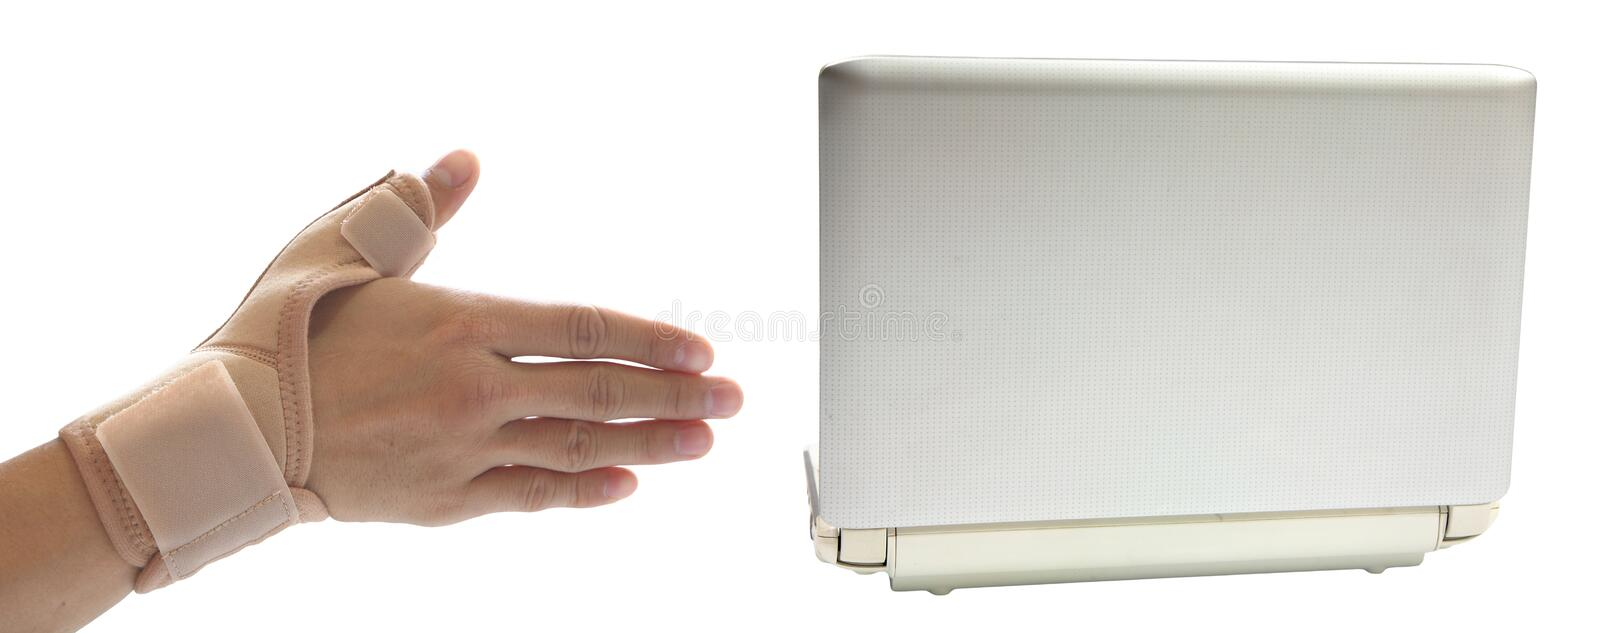 Painful wrist and thumb from working on computer royalty free stock images